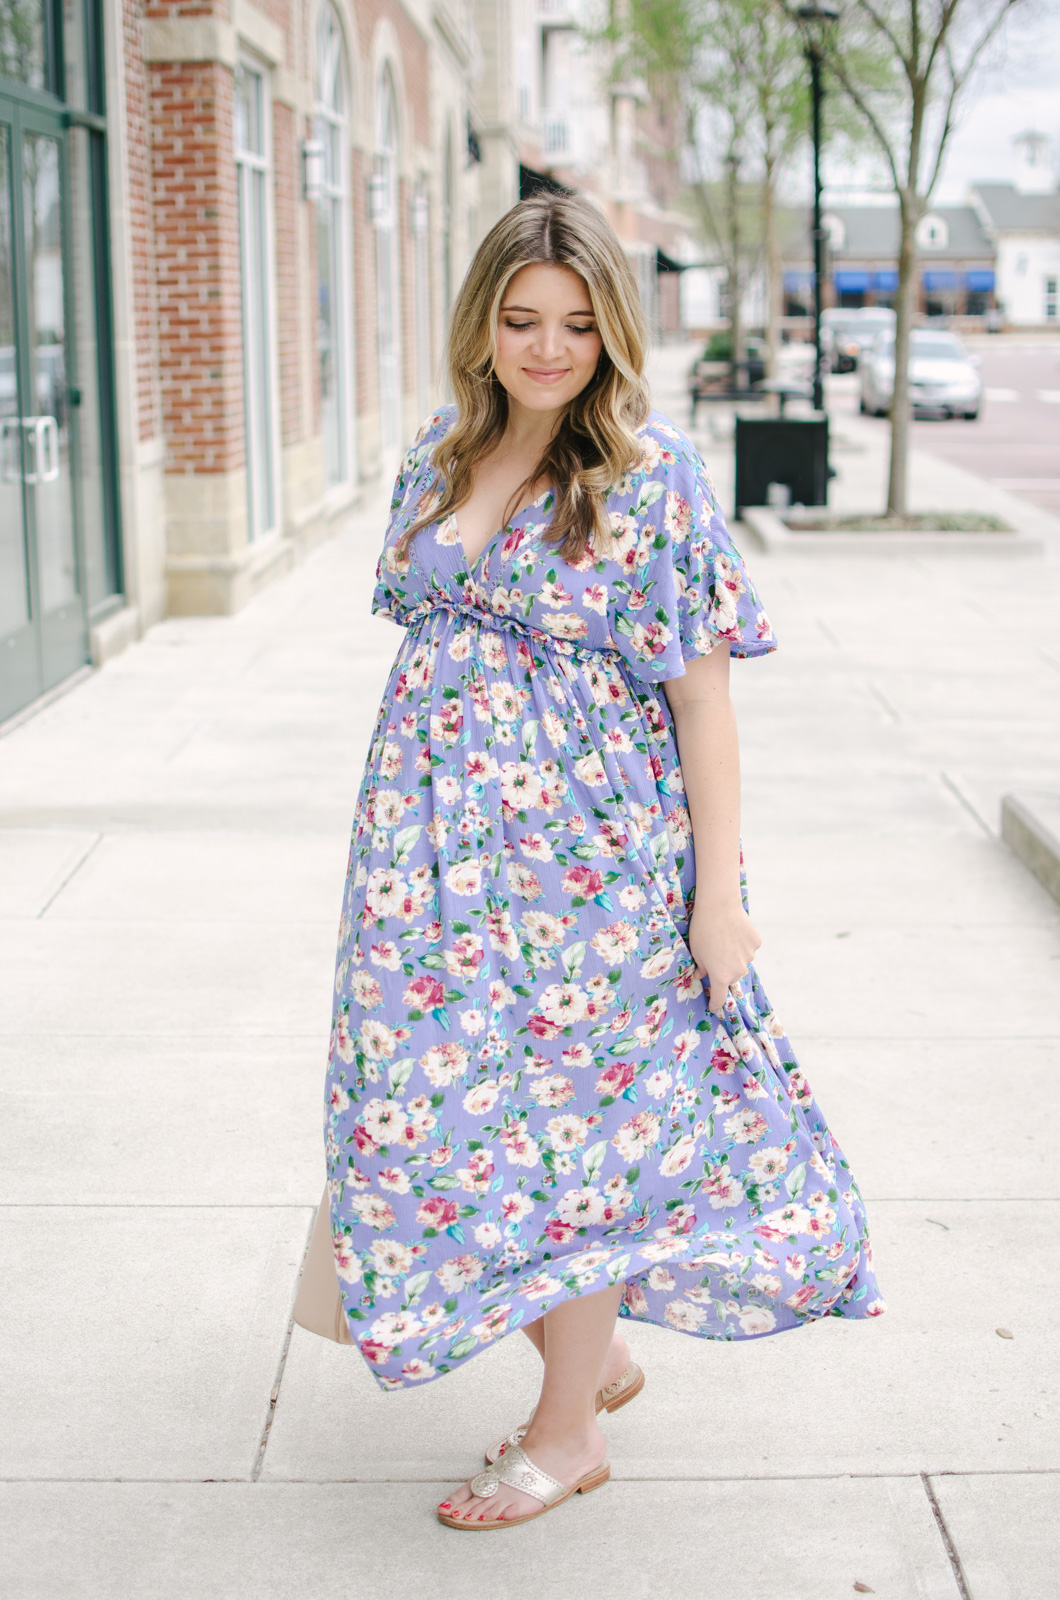 spring maternity outfit maxi dress - floral non-maternity maxi dress second trimester outfit | bylaurenm.com